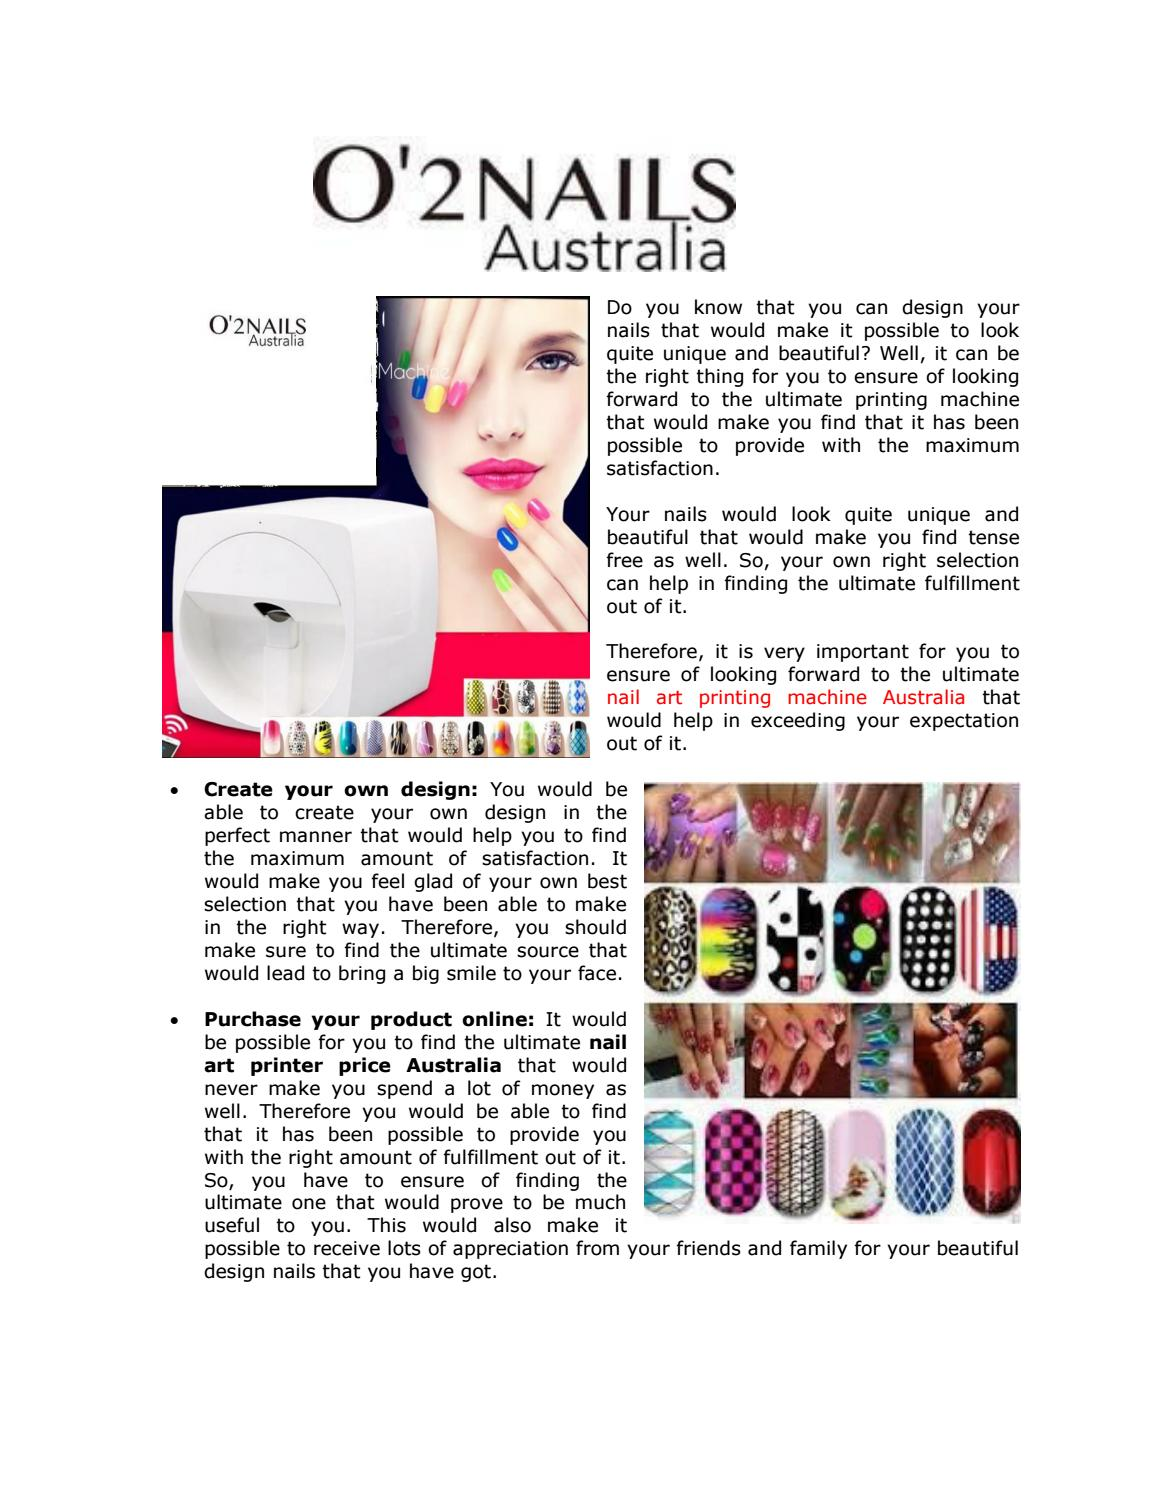 Take Good Steps to Ensure of Finding the Perfect Nail Art Printing ...